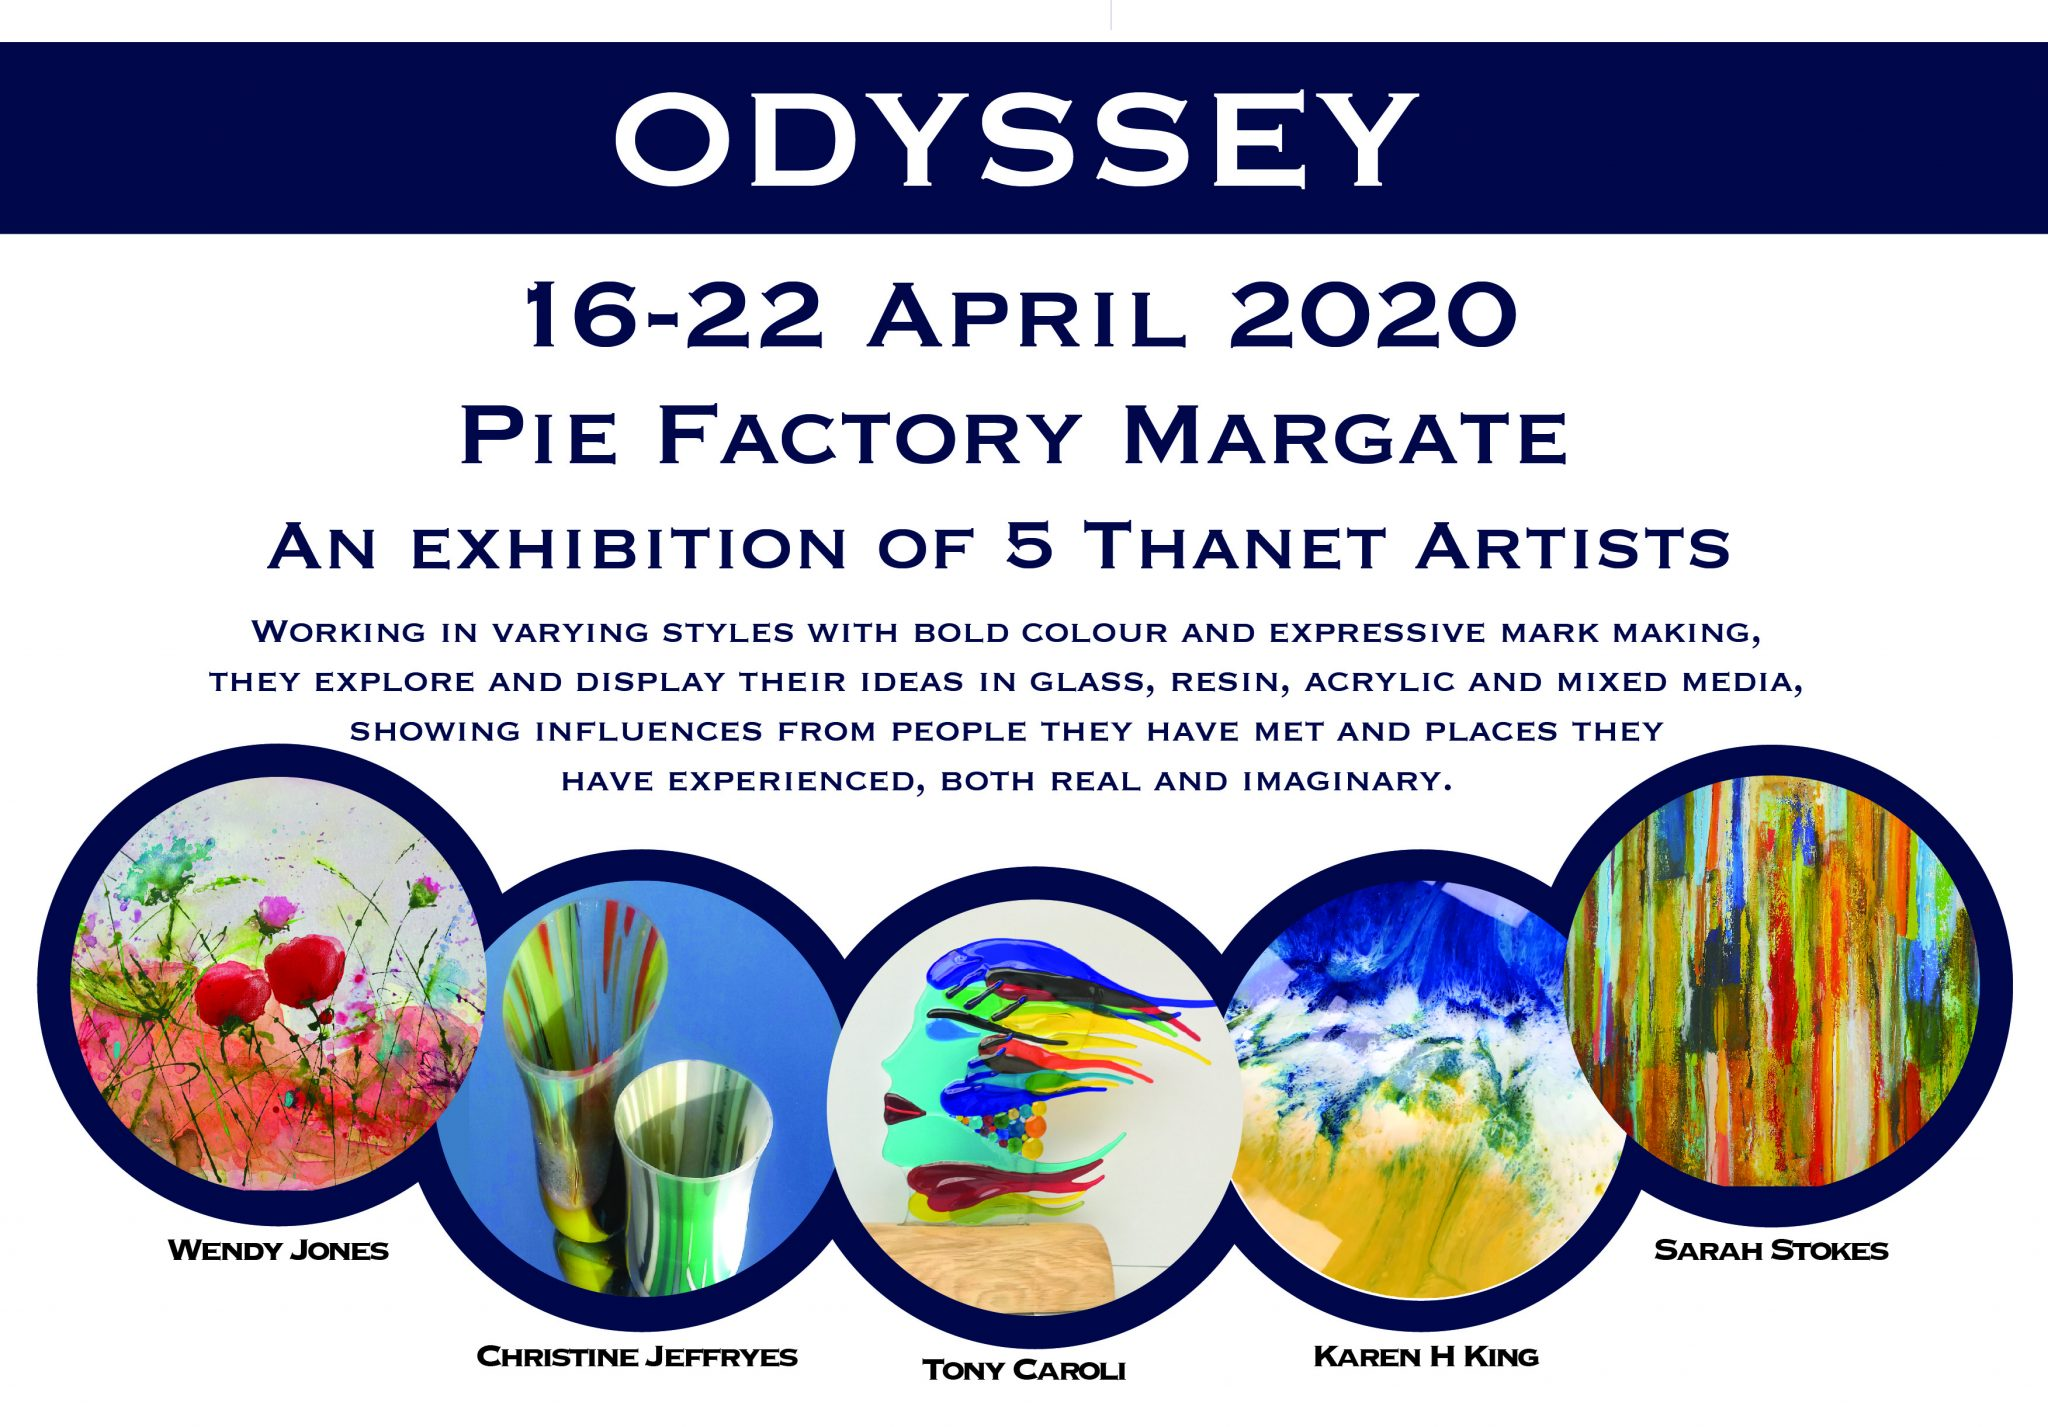 Odyssey exhibition at Pie Factory Margatte